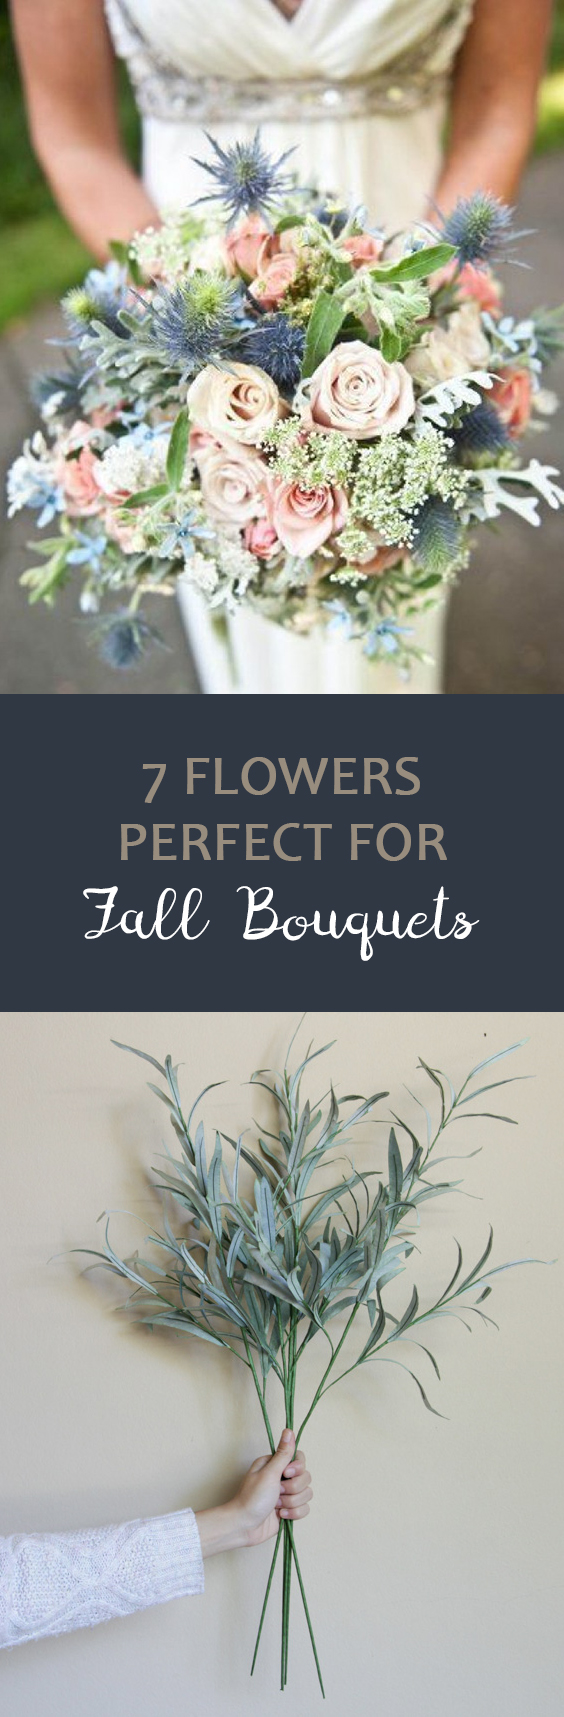 Fall flowers, fall wedding, wedding decor, popular pin, DIY flowers, wedding hacks, wedding themes, wedding bouquets.